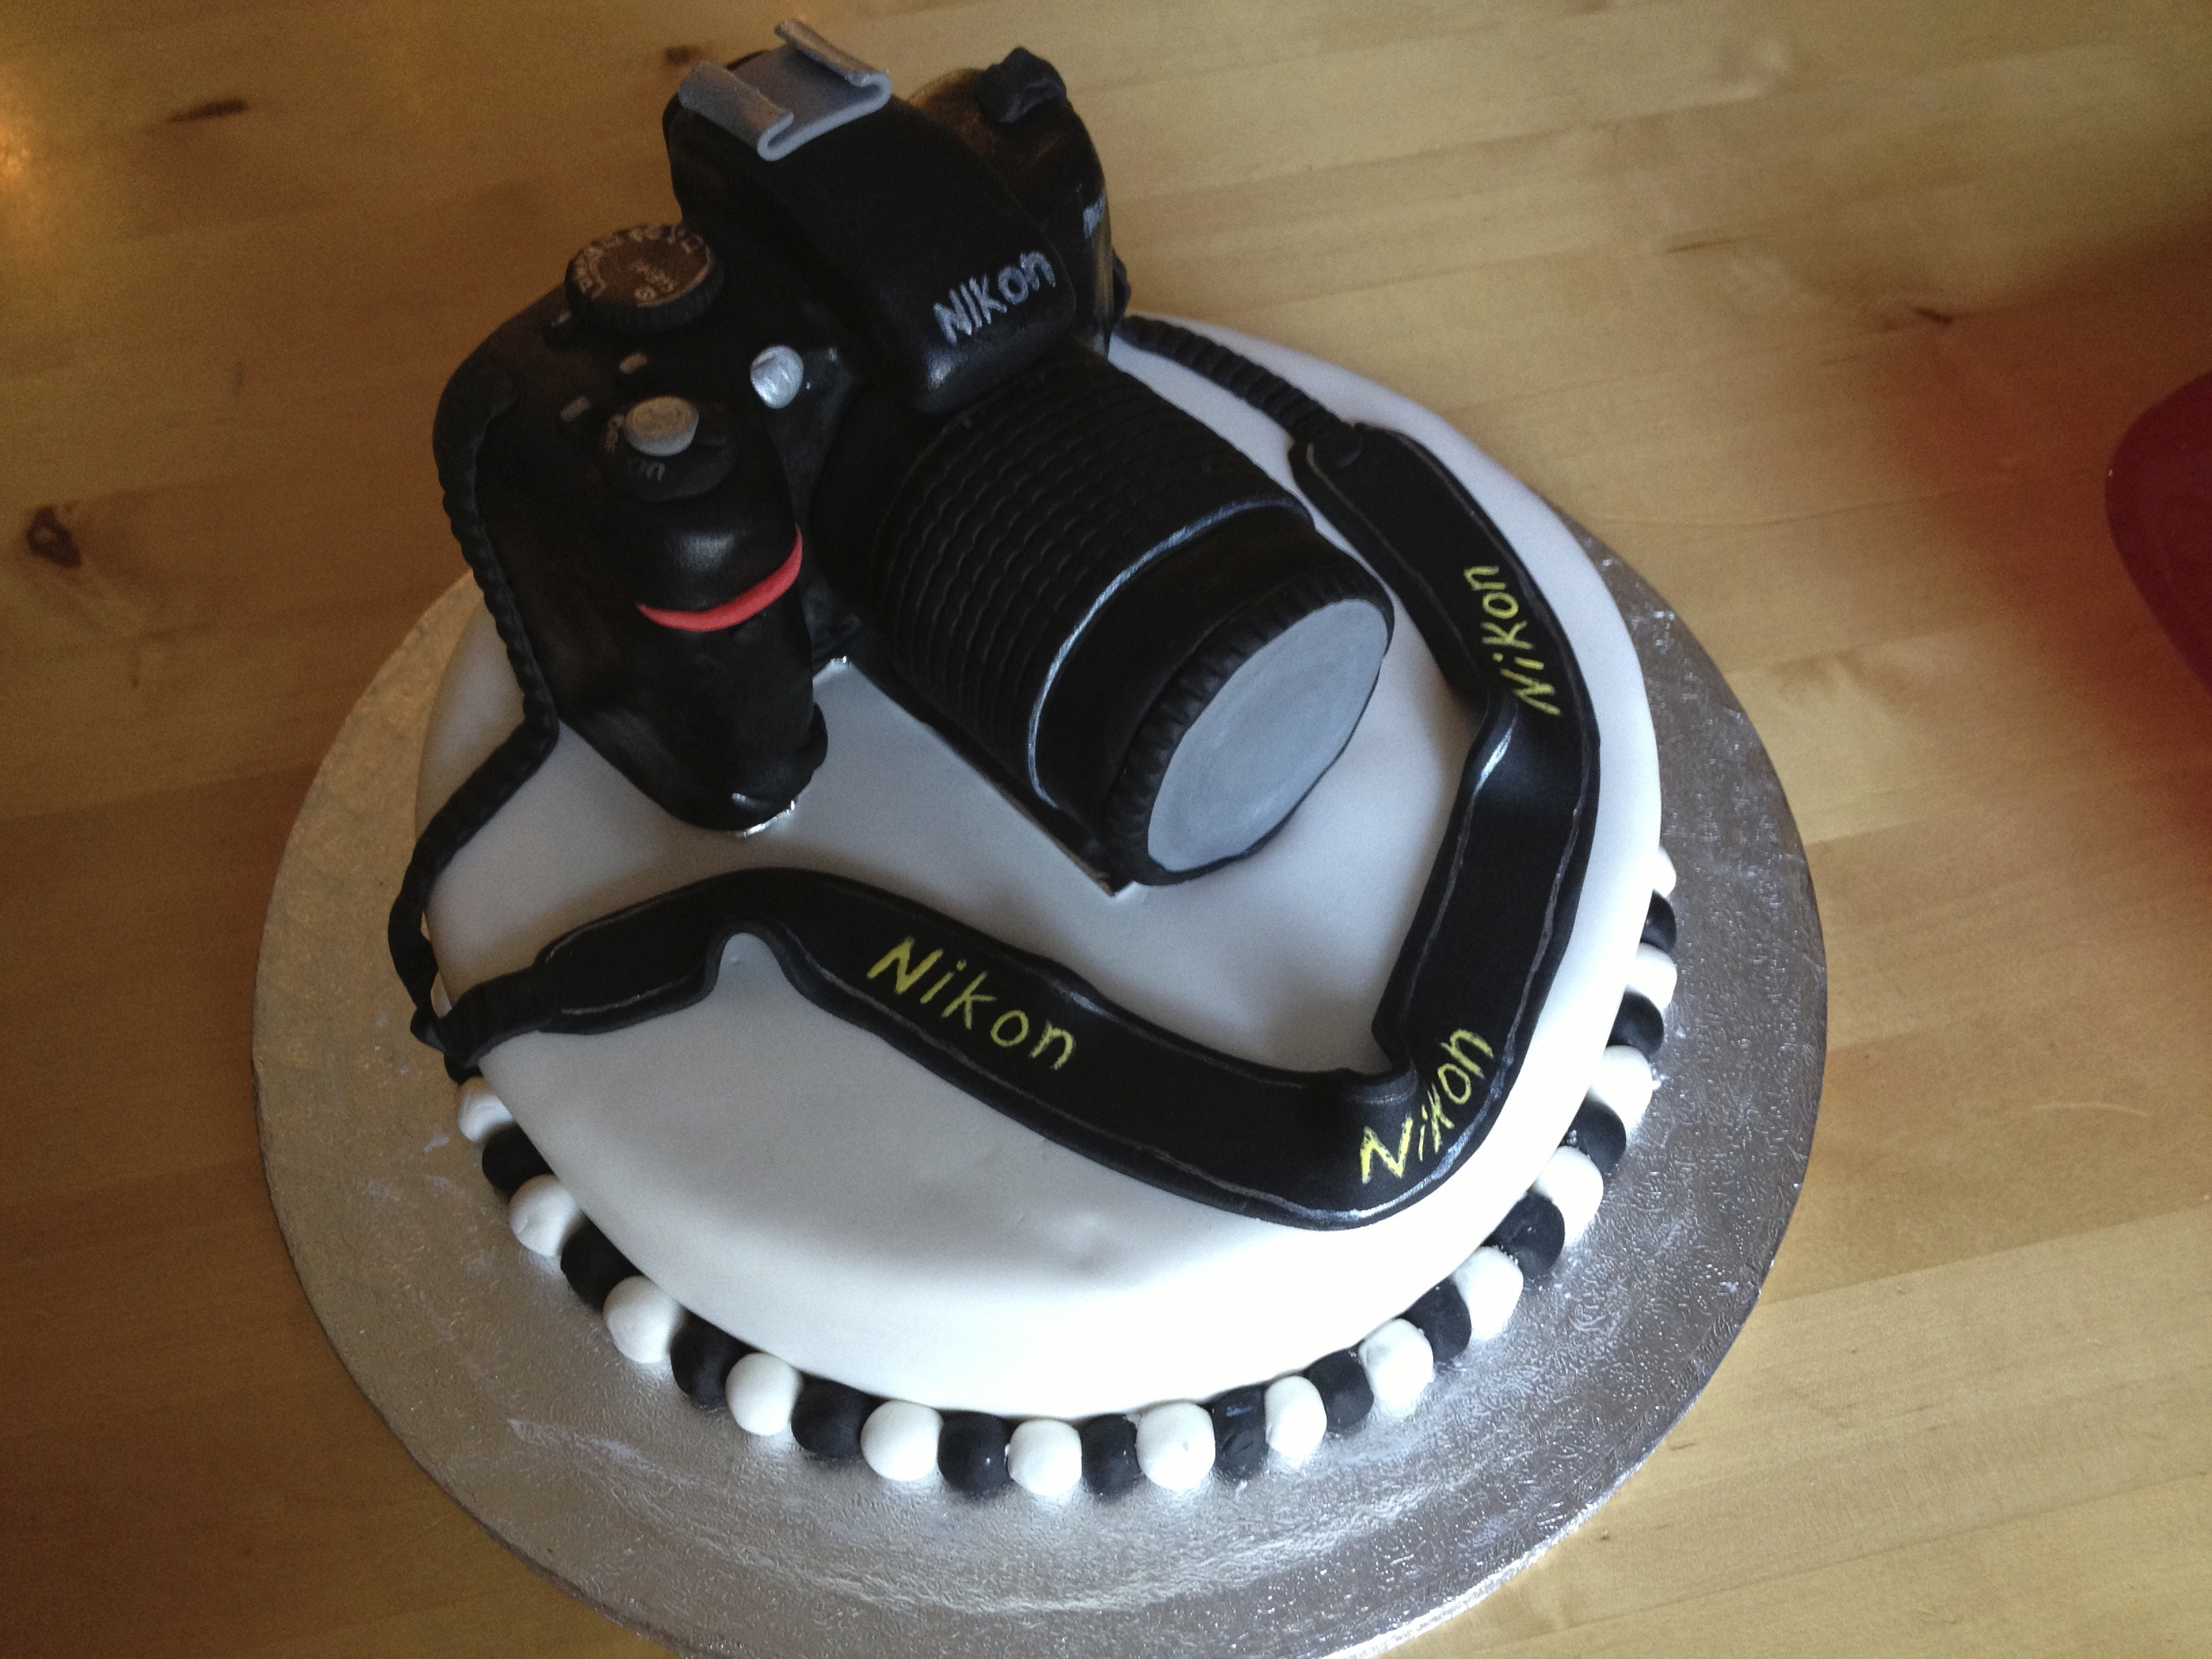 Best ideas about Camera Birthday Cake . Save or Pin 18th Birthday Camera Cake Now.